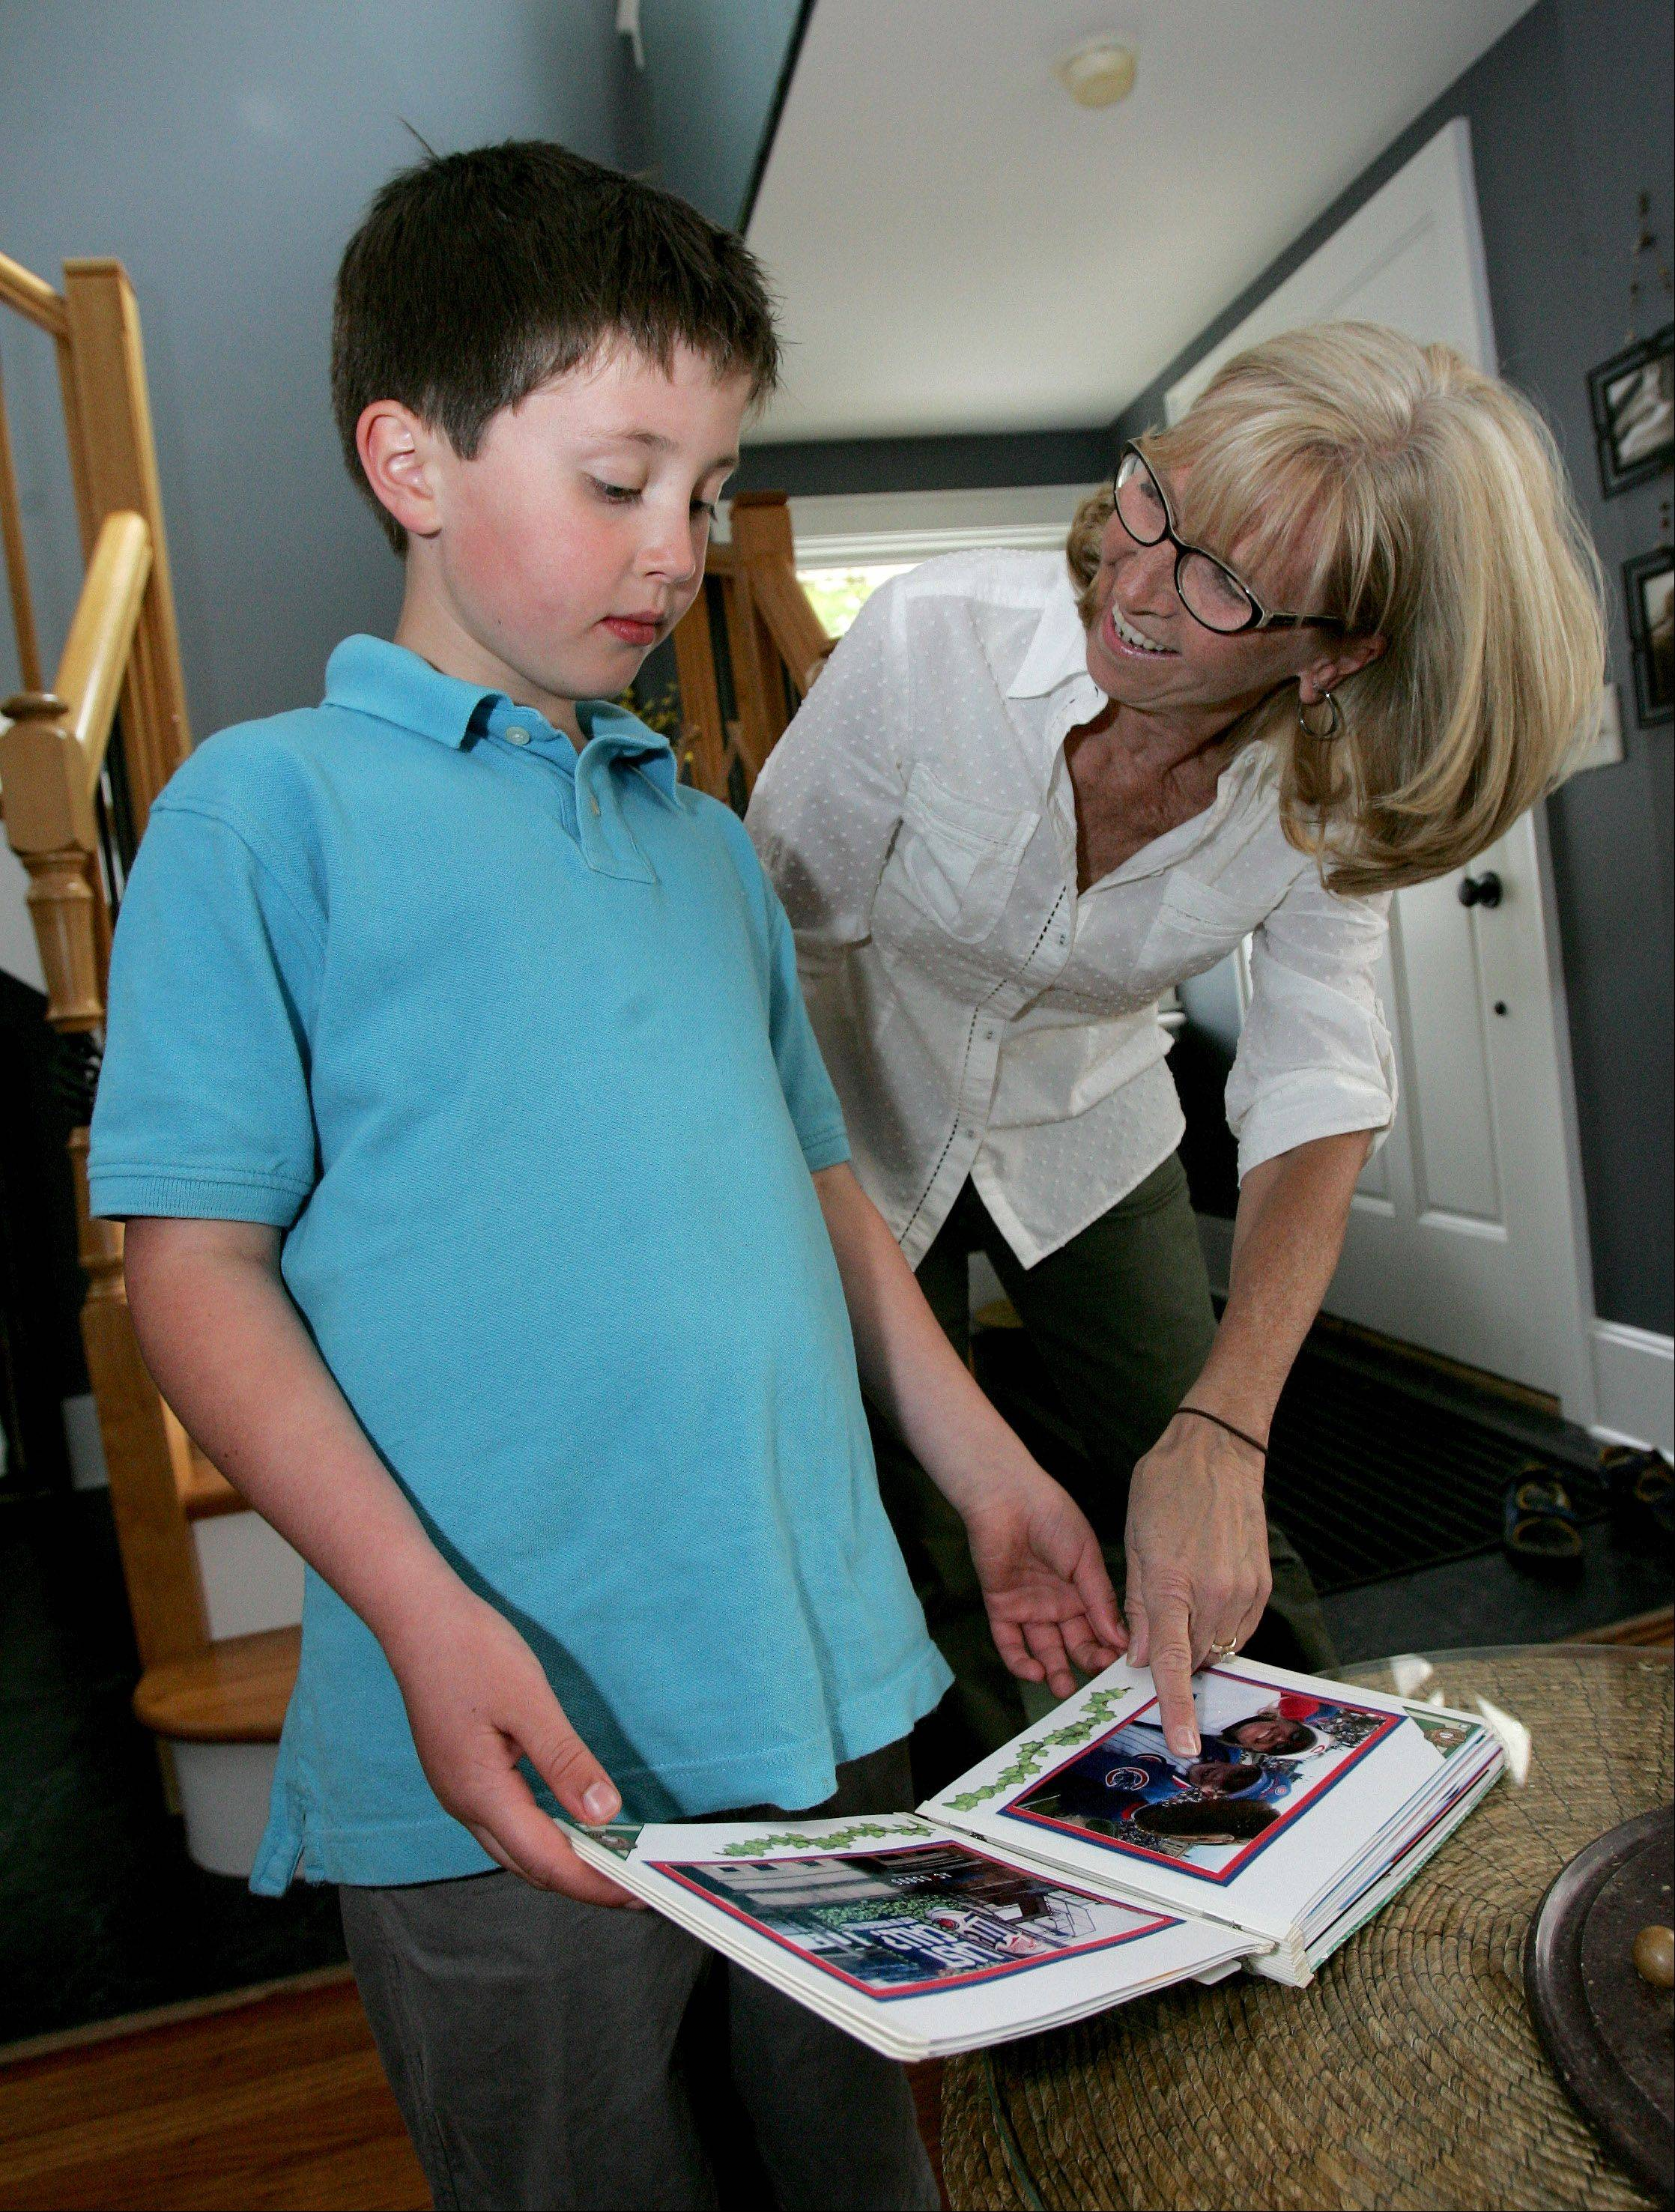 Showing her grandson Cal, 7, the family scrapbook of Cubs moments, Debra Hruby of Wheaton will be attending her 28th straight Opening Day at Wrigley Field today with Cal, Cal's father Sean of Geneva and her husband Mike.